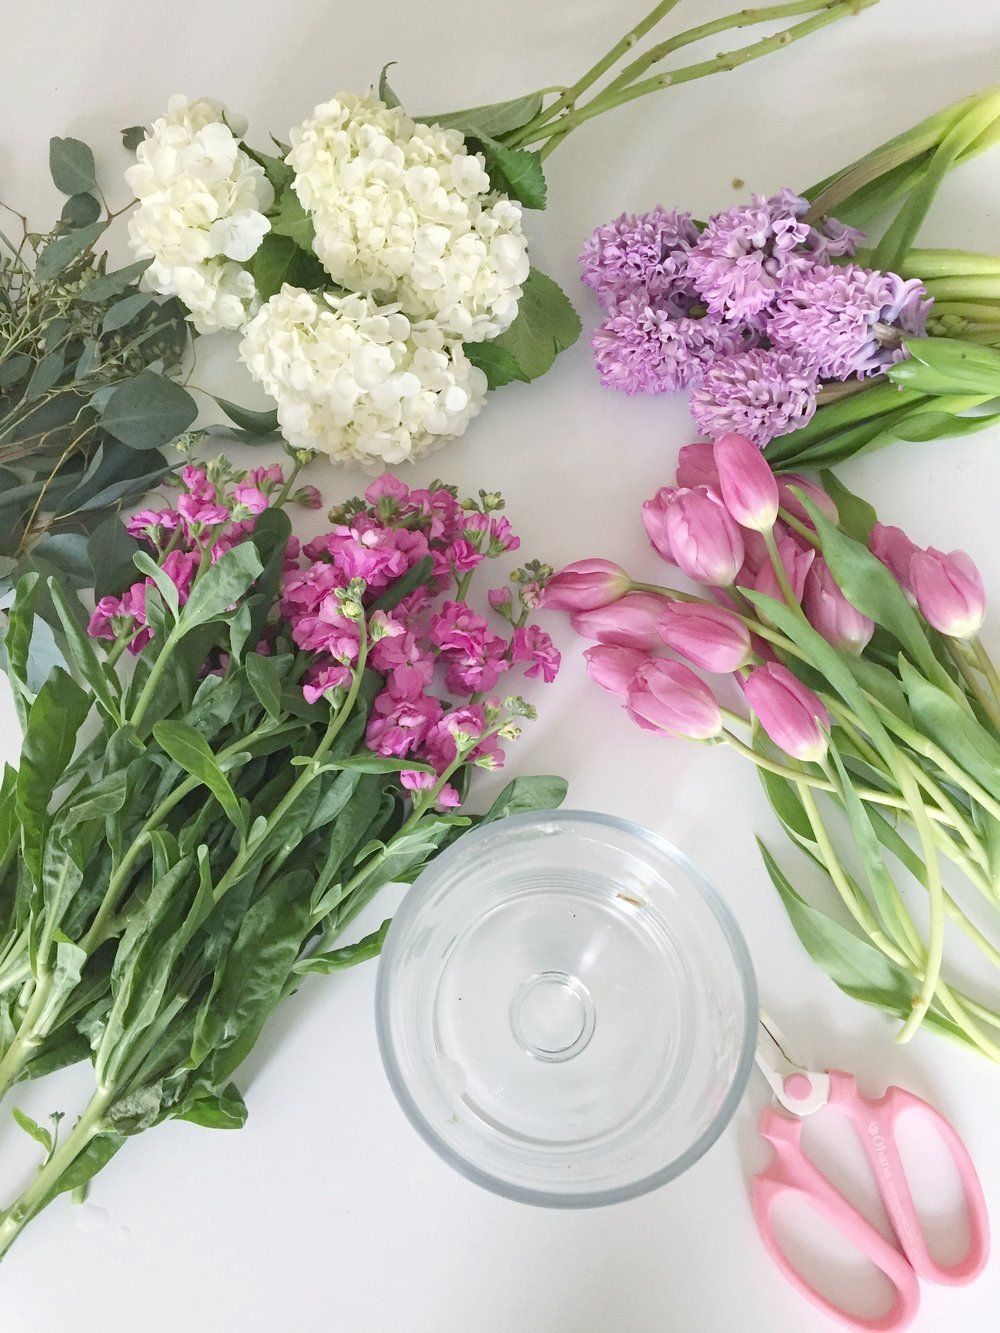 How to create a centerpiece using grocery store flowers